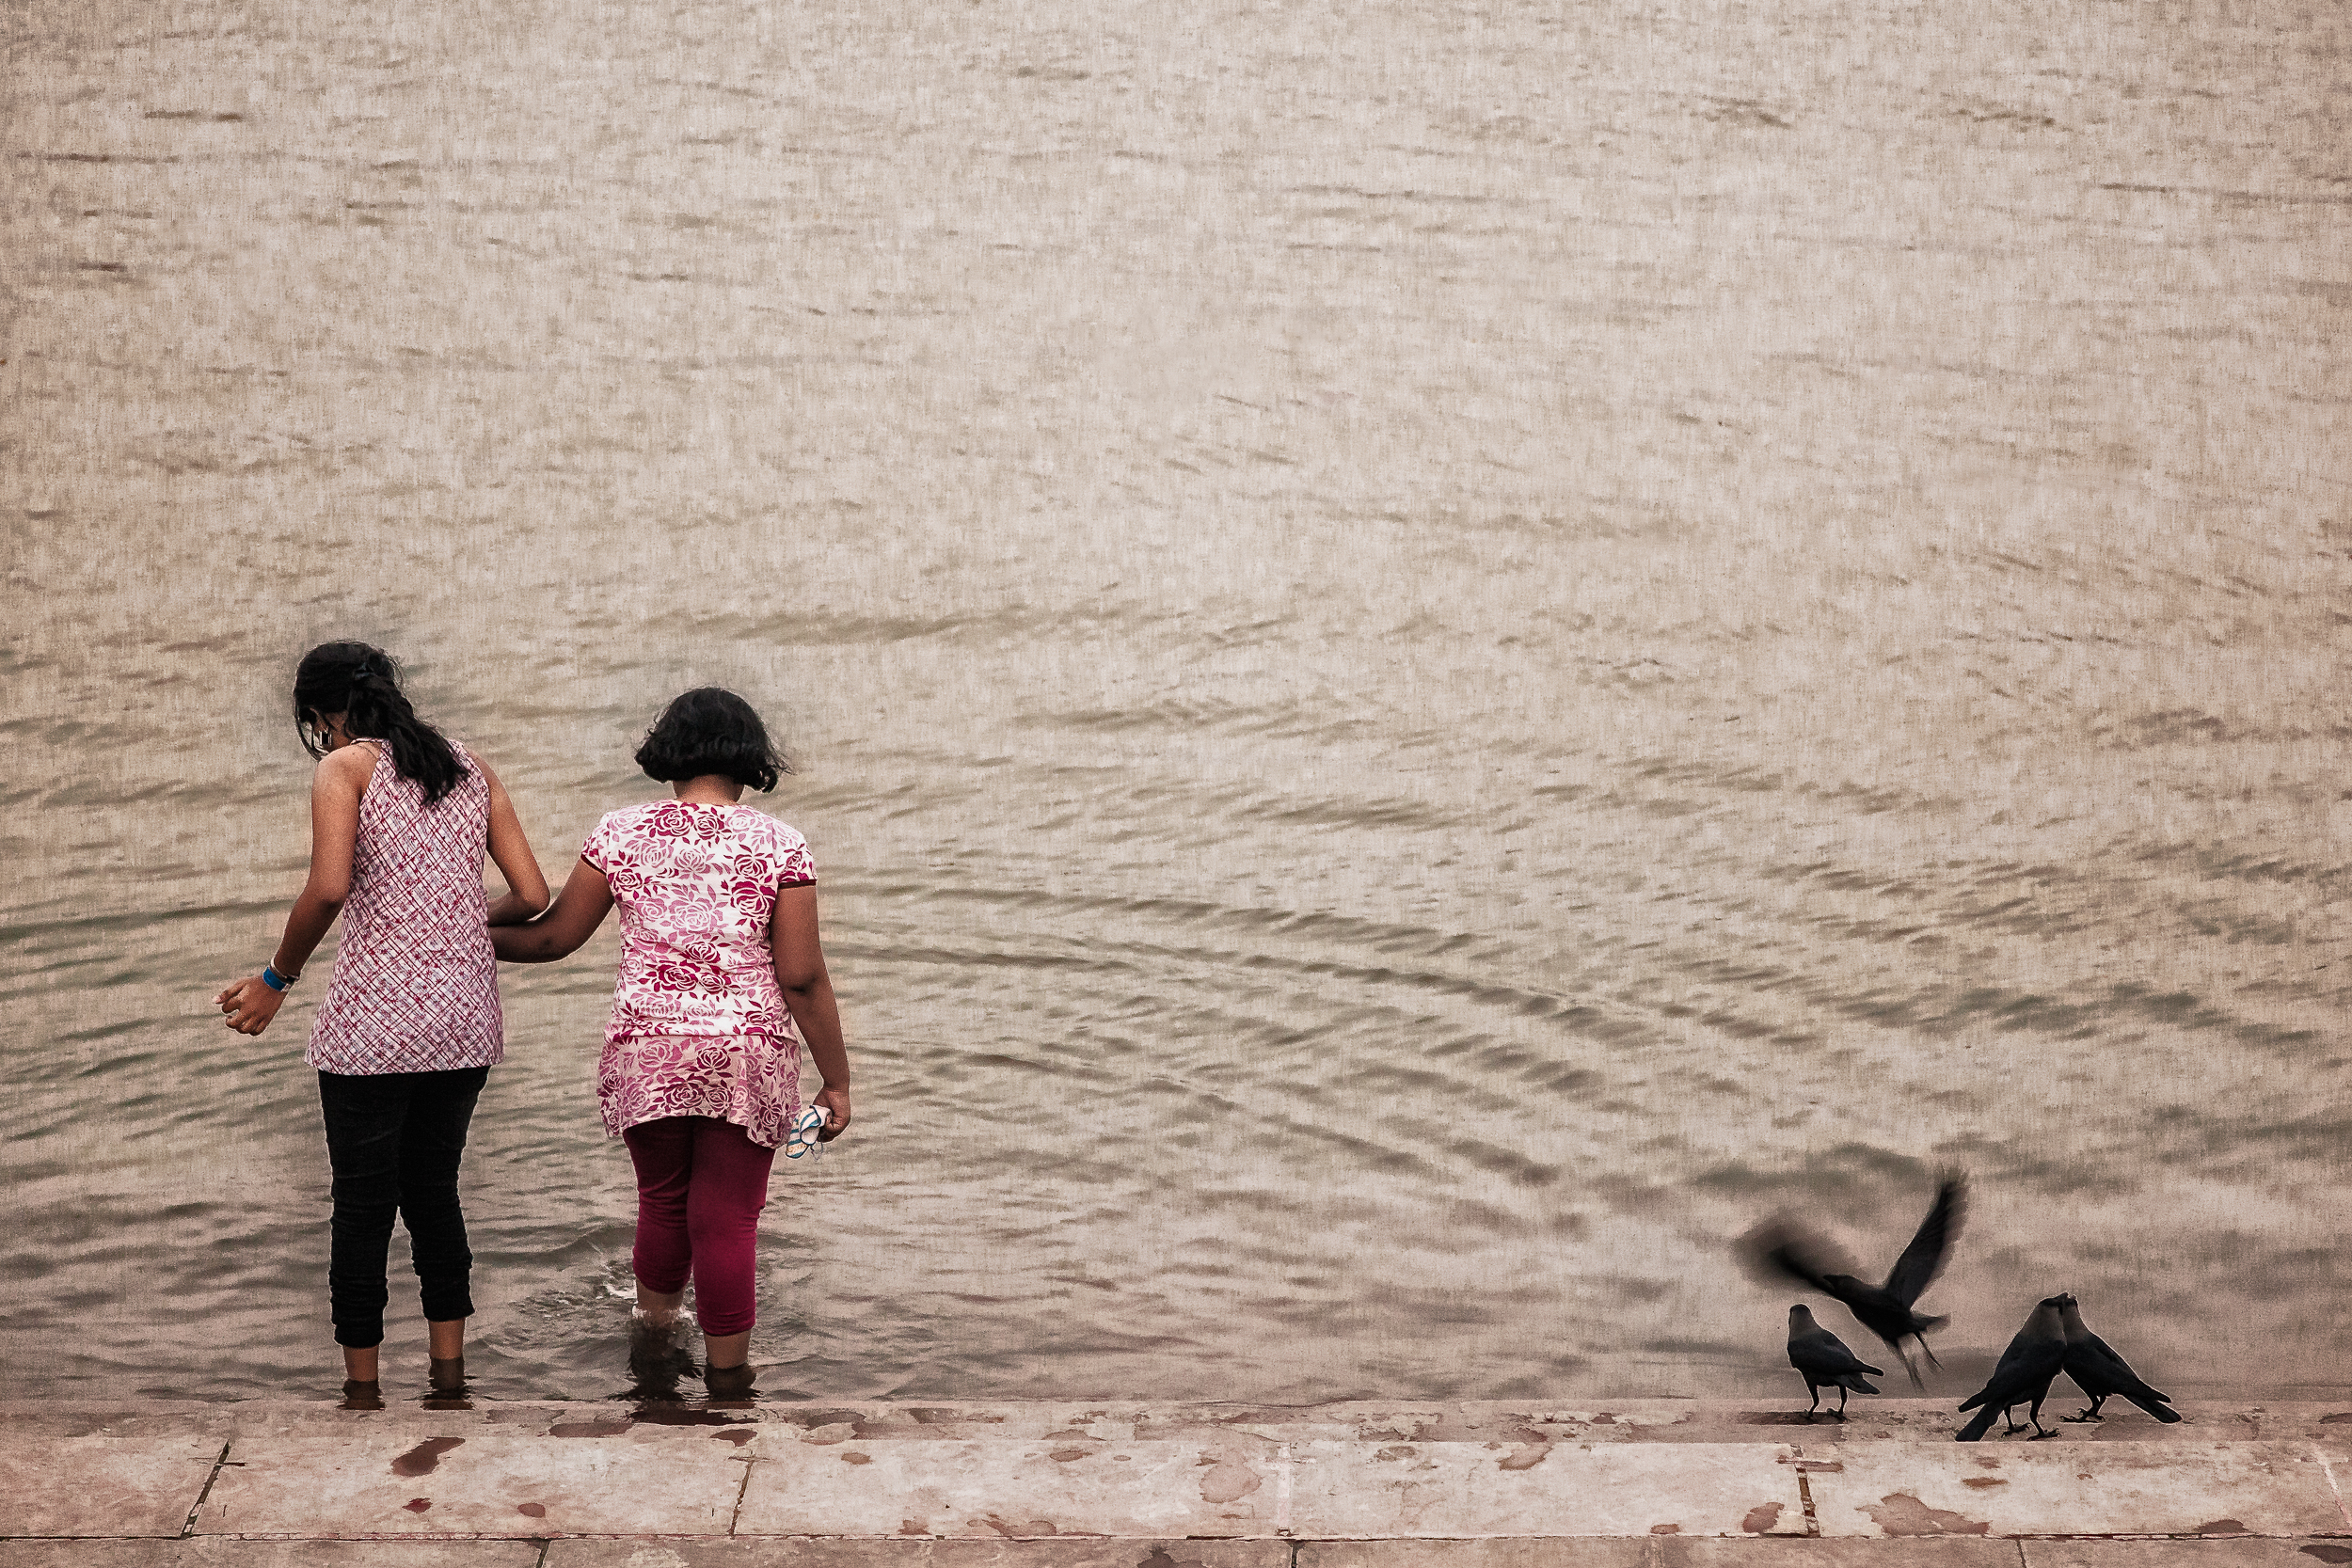 Two girls  step gingerly into the waters of the  Hooghly River  in  Kolkata, India .